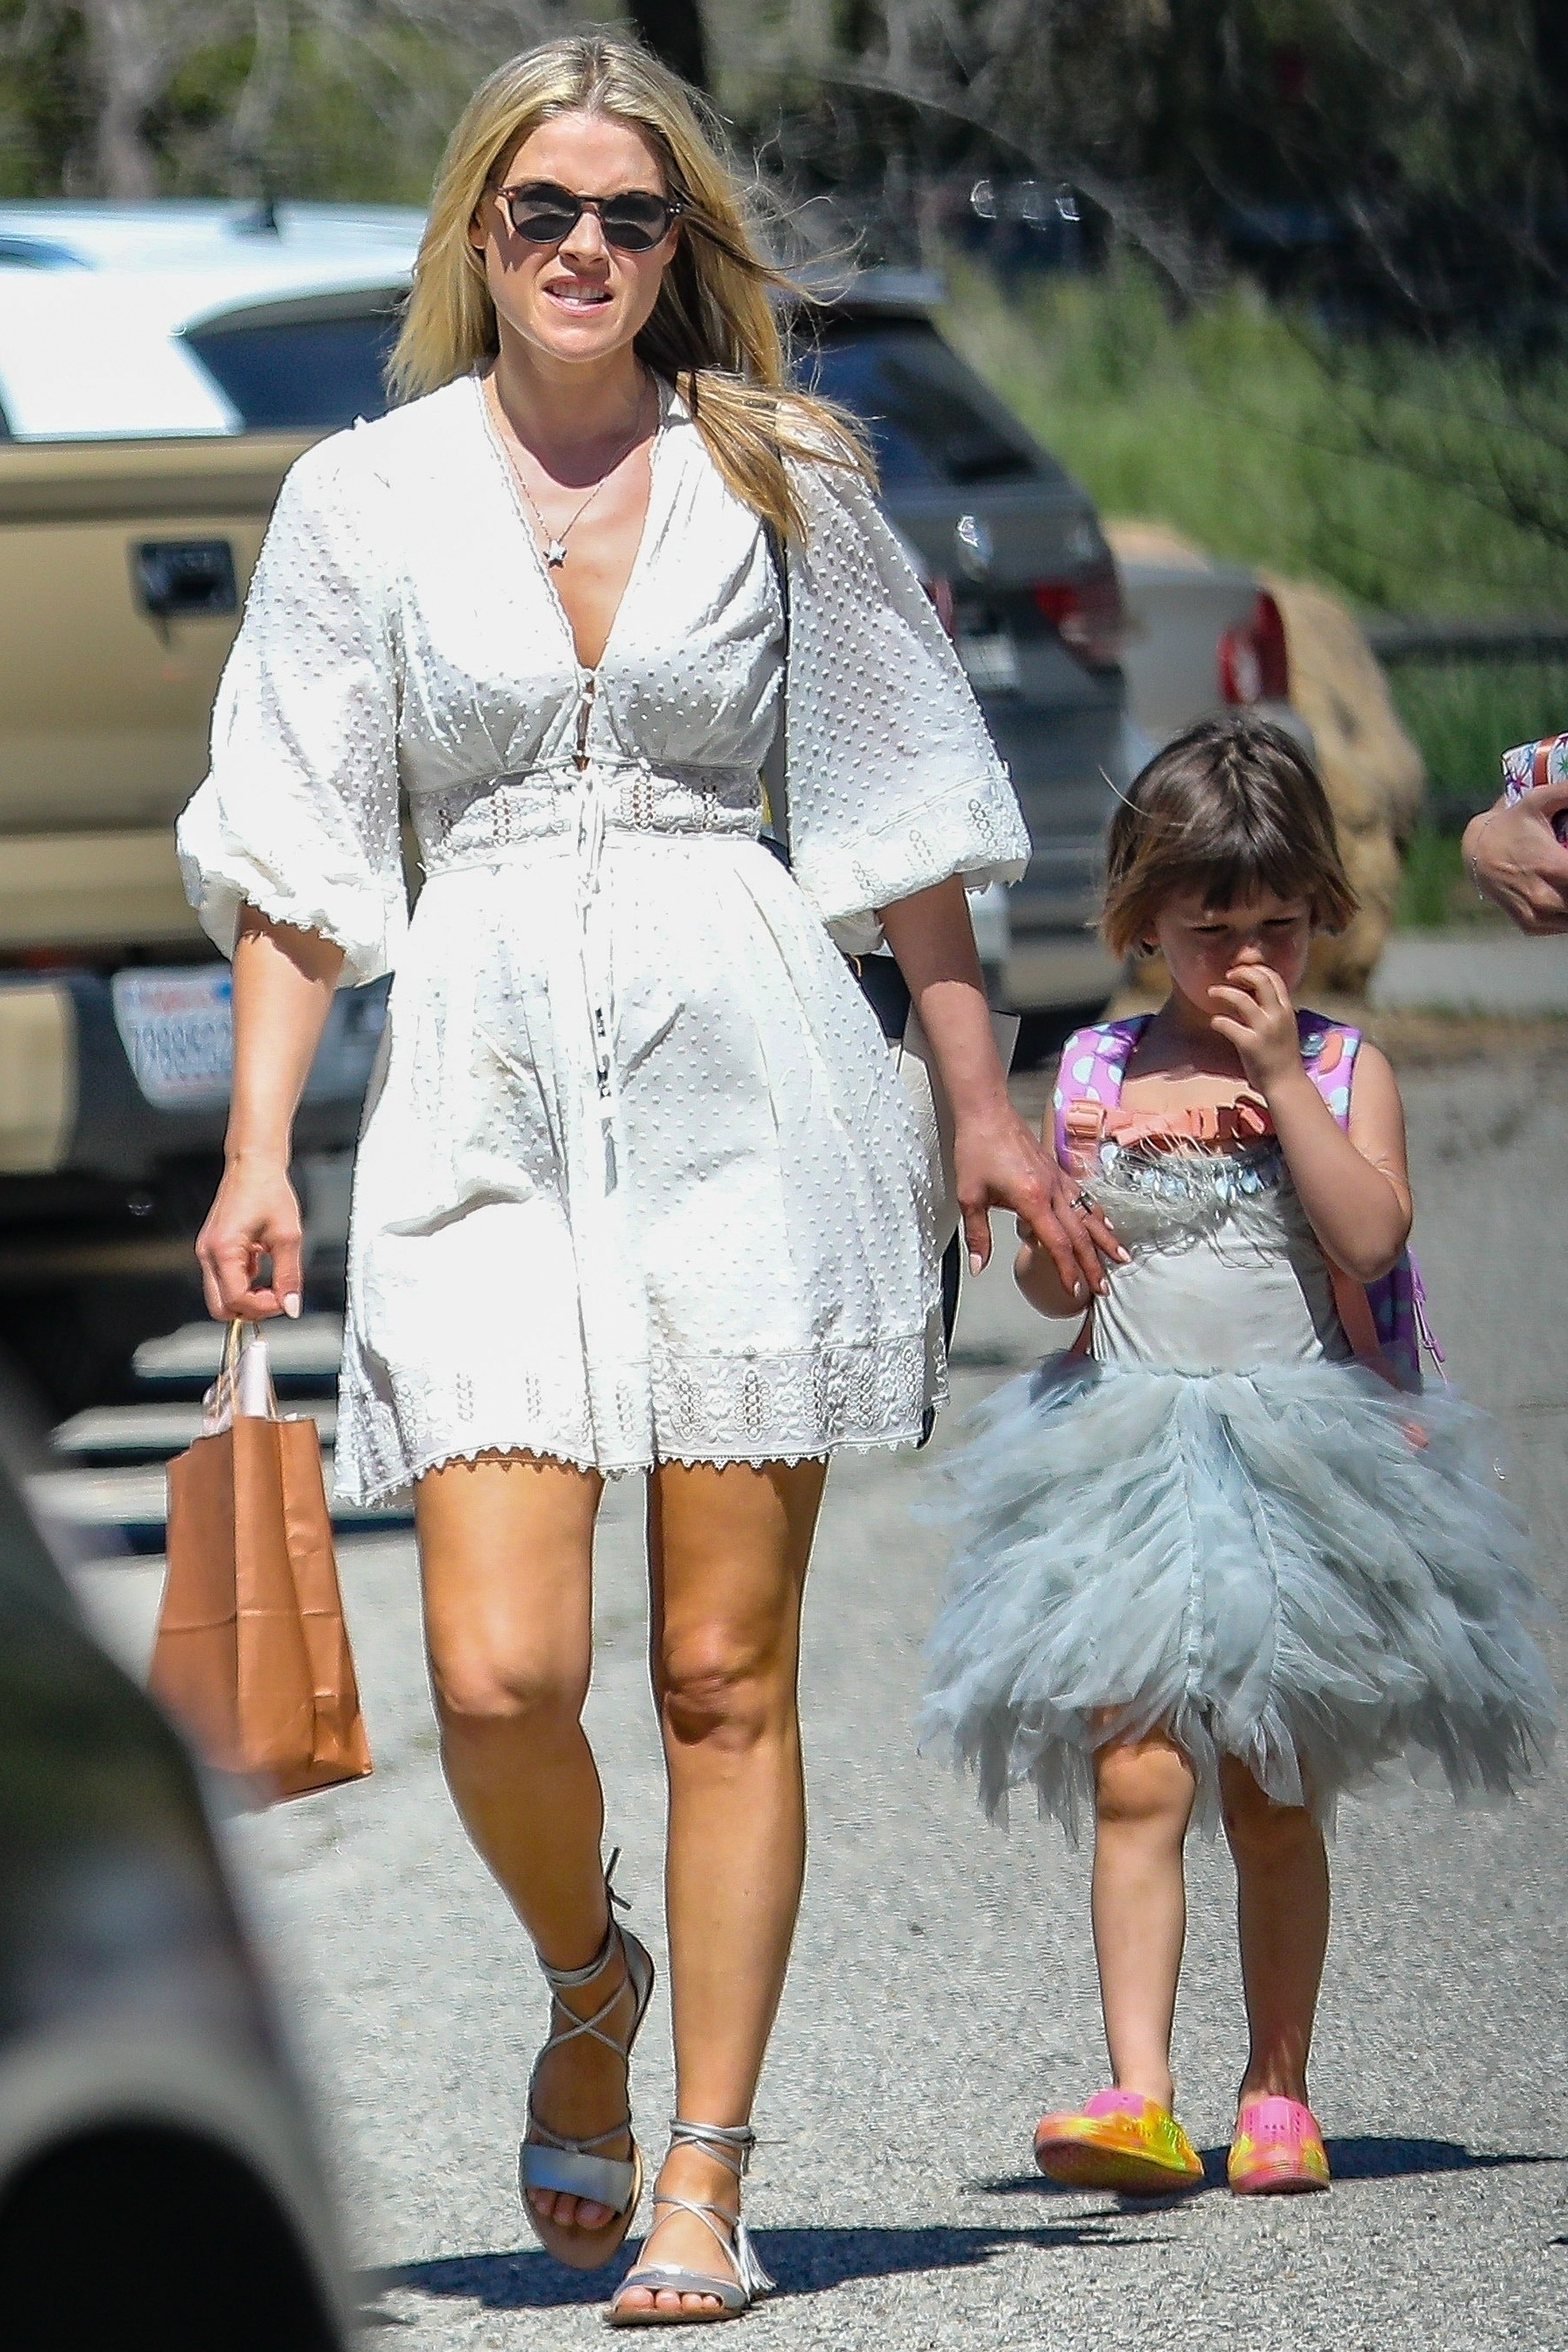 Ali Larter was spotted taking her daughter Vivienne to a party in Los Angeles, CA on March 17, 2019.